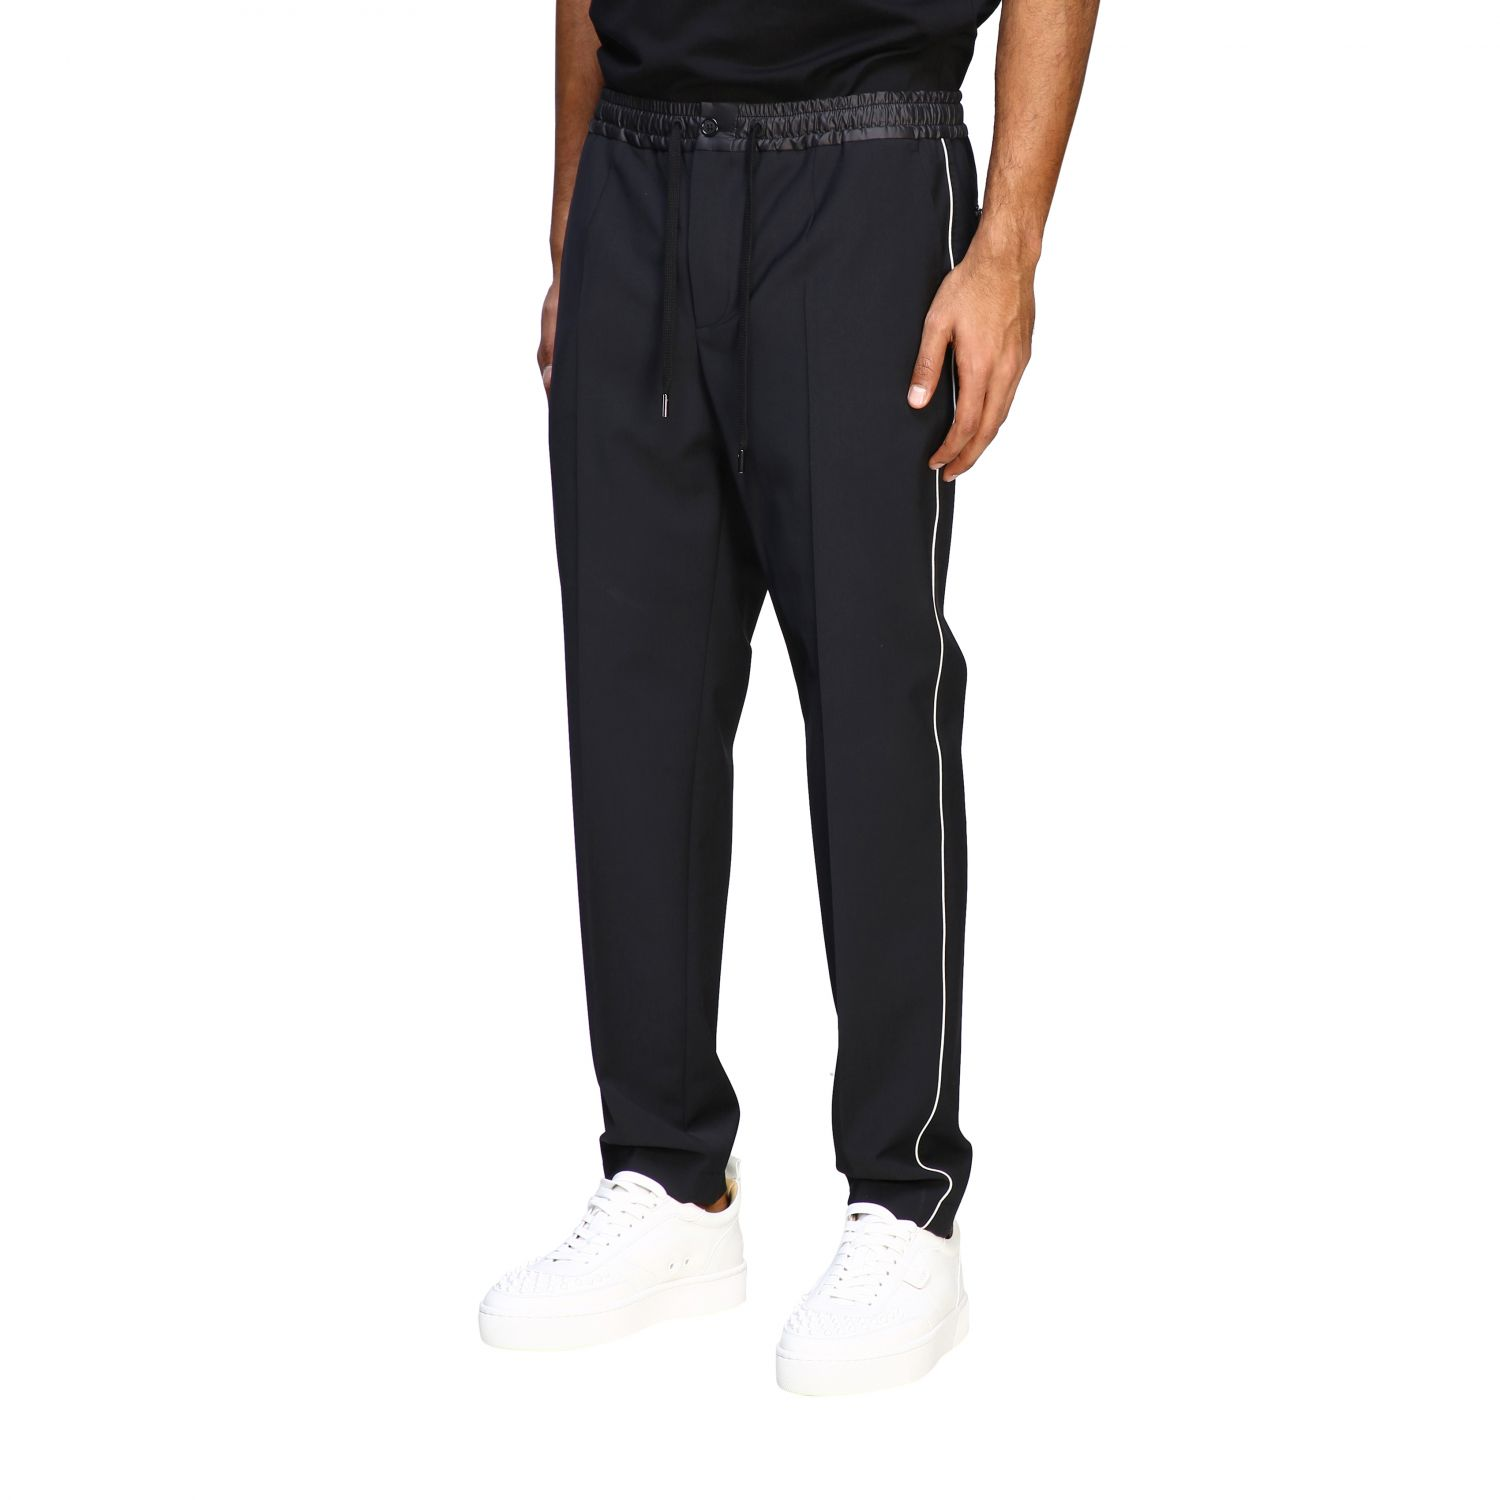 Pants Dolce & Gabbana: Dolce & Gabbana jogging style trousers with colored edges black 3